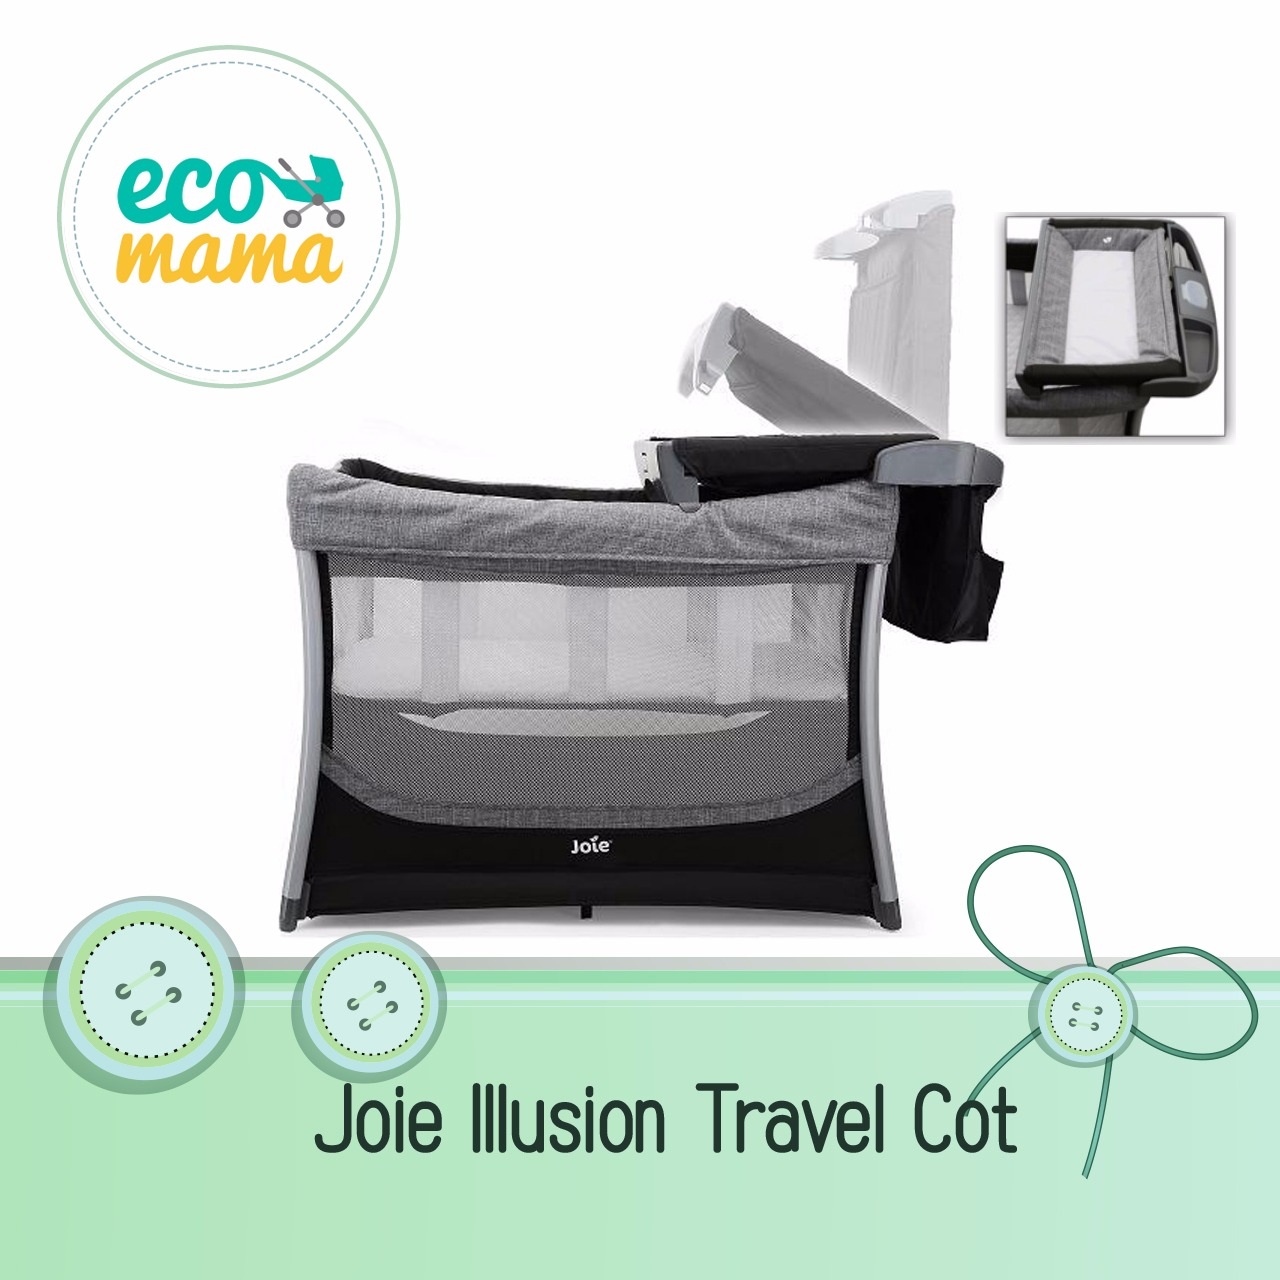 Joie Illusion Travel Cot